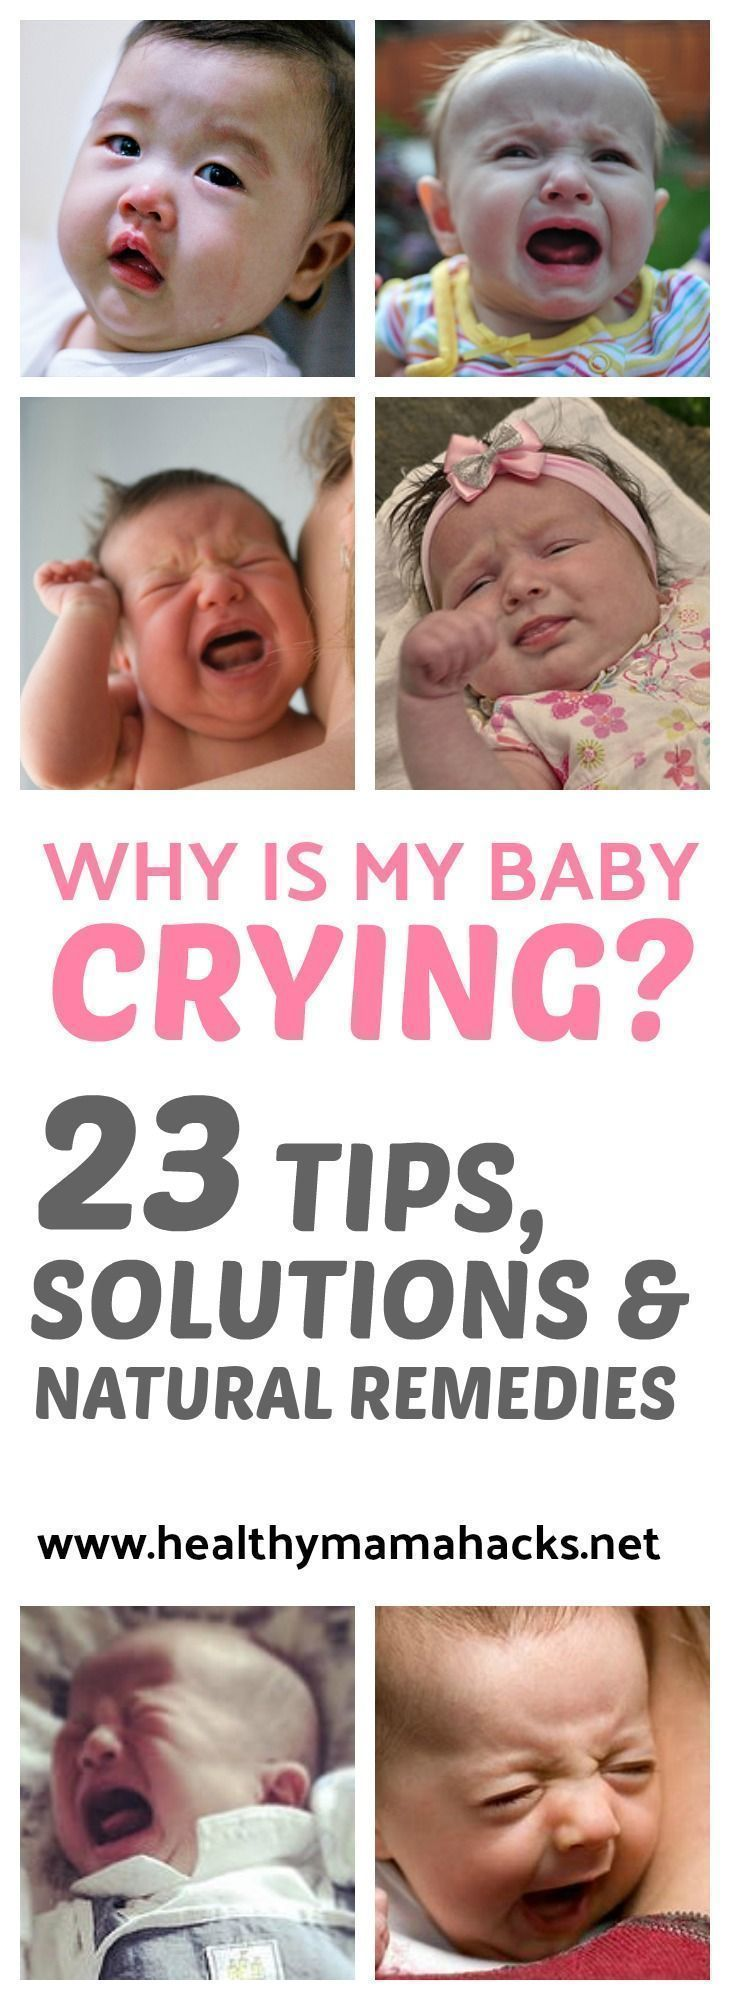 How to calm a crying baby 21 easy solutions natural